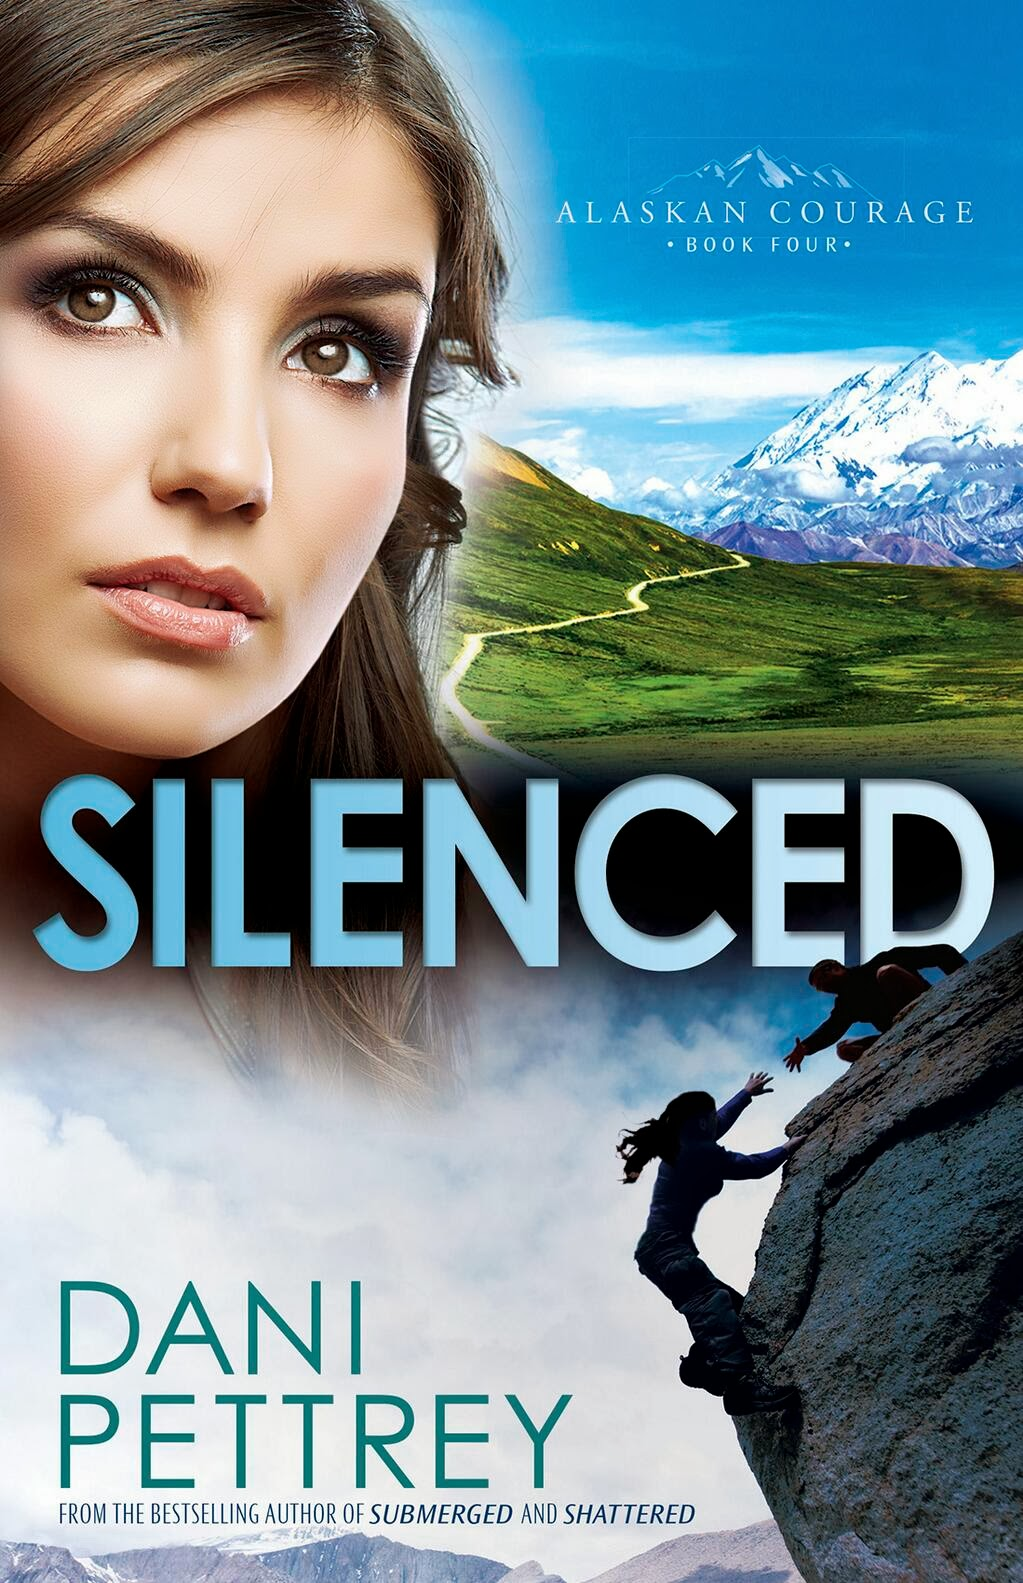 'SILENCED,' BY DANI PETTREY. Review of book four in the Alaskan Courage romantic suspense series. All review text © Rissi JC